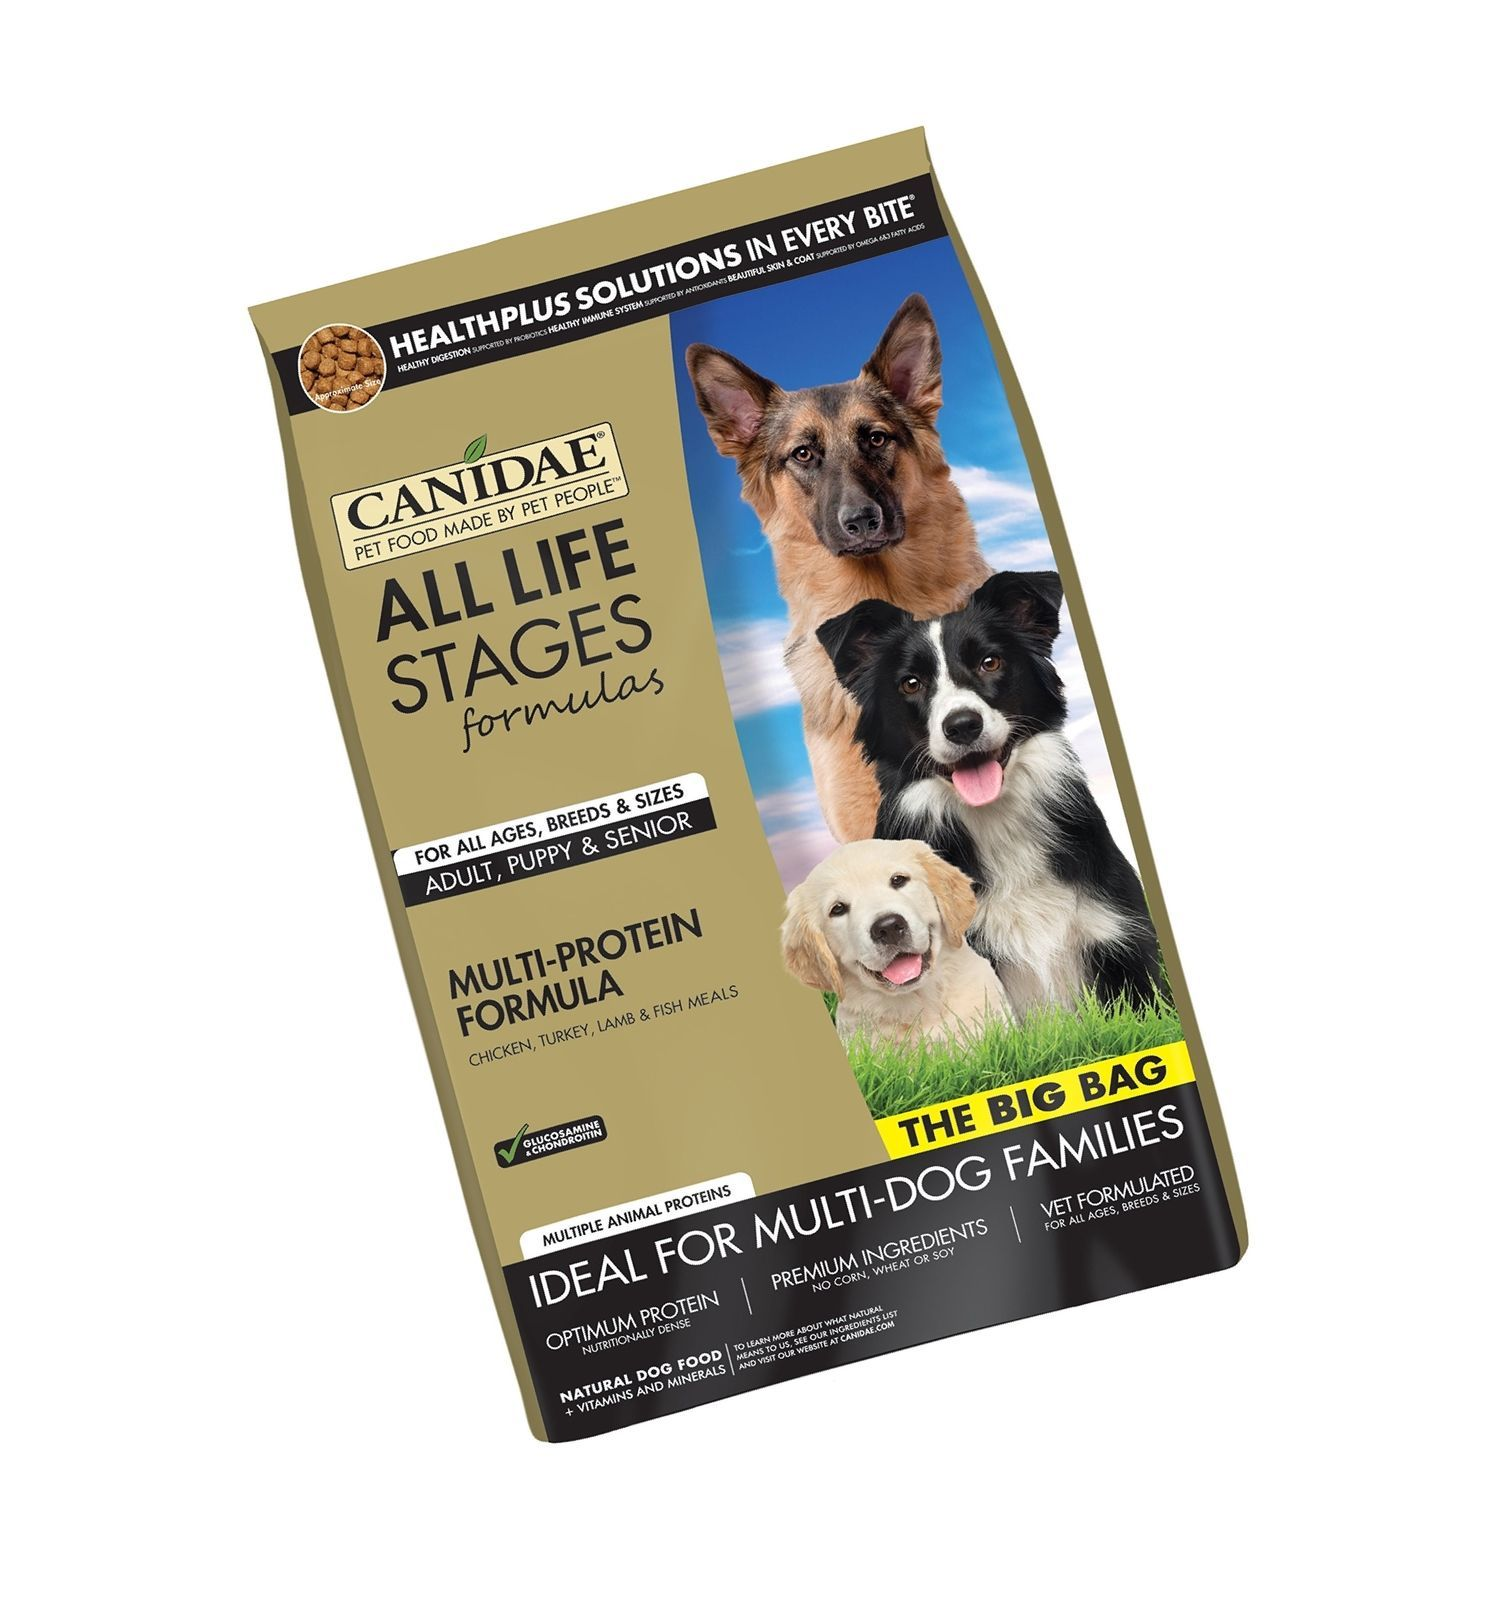 CANIDAE All Life Stages Dry Dog Food for Puppies, Adults & Seniors 44-Pound